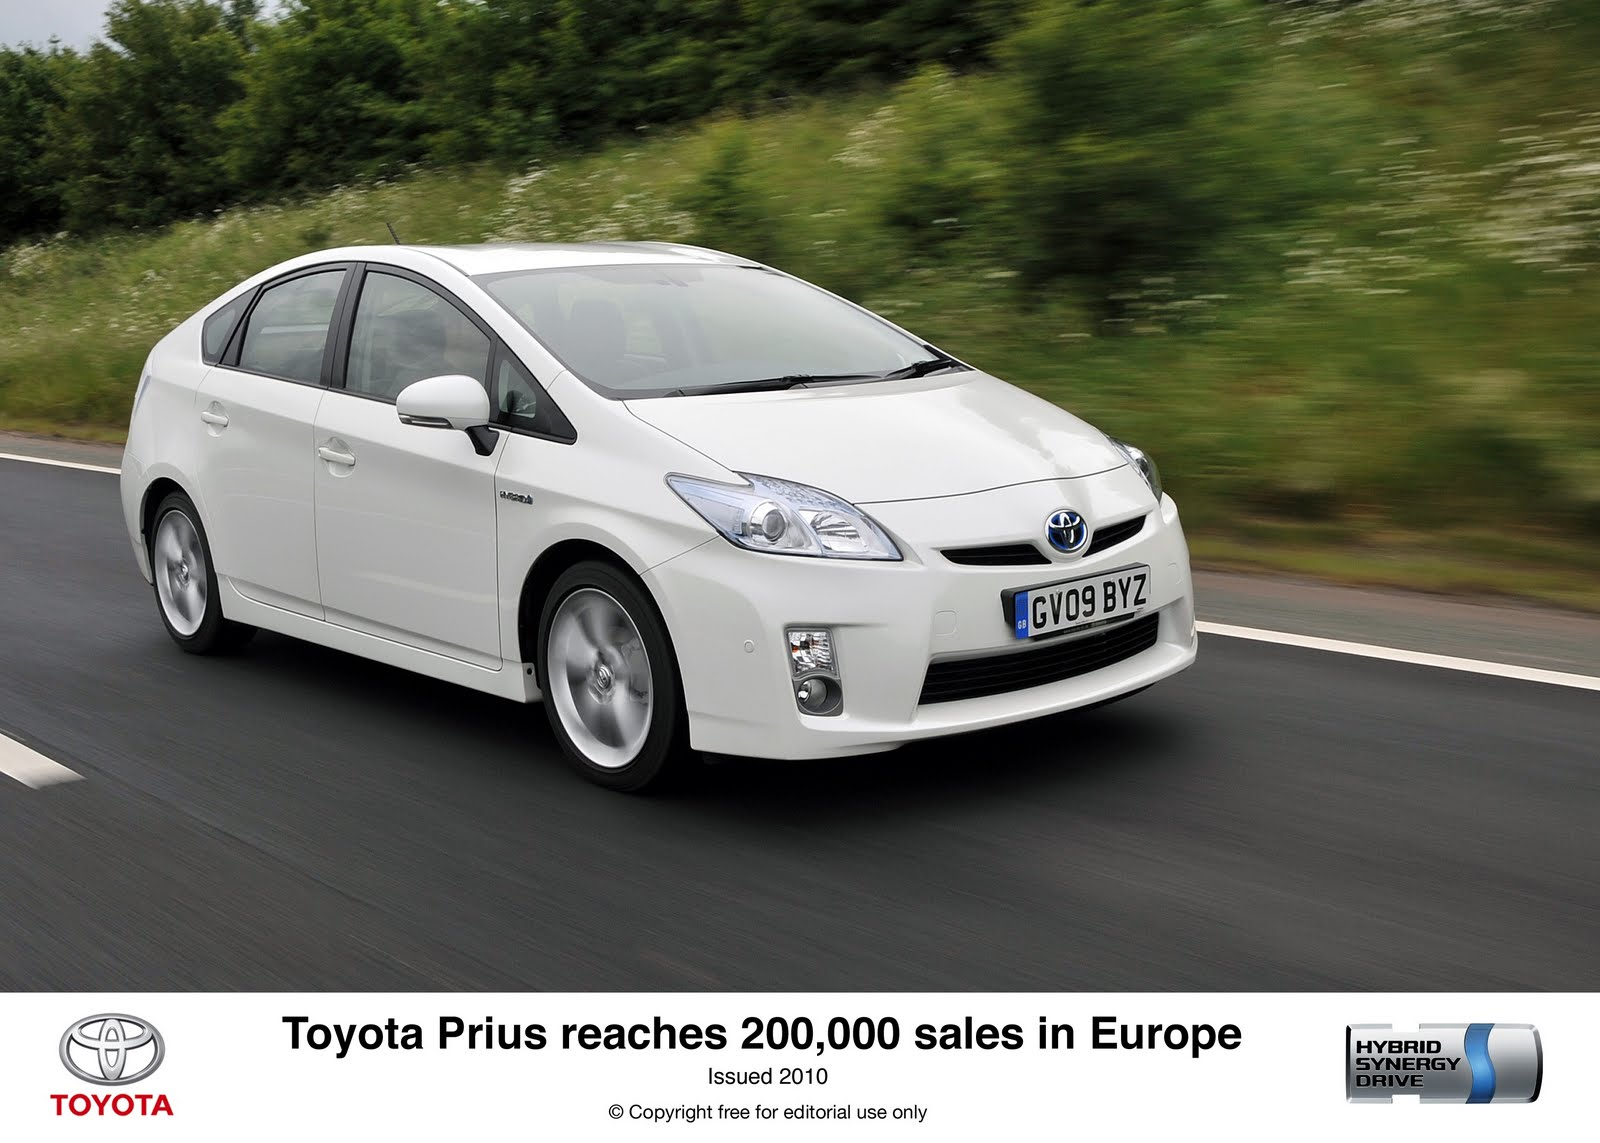 Toyota Prius Sales Reach 200,000 in Europe | Electric Vehicle News